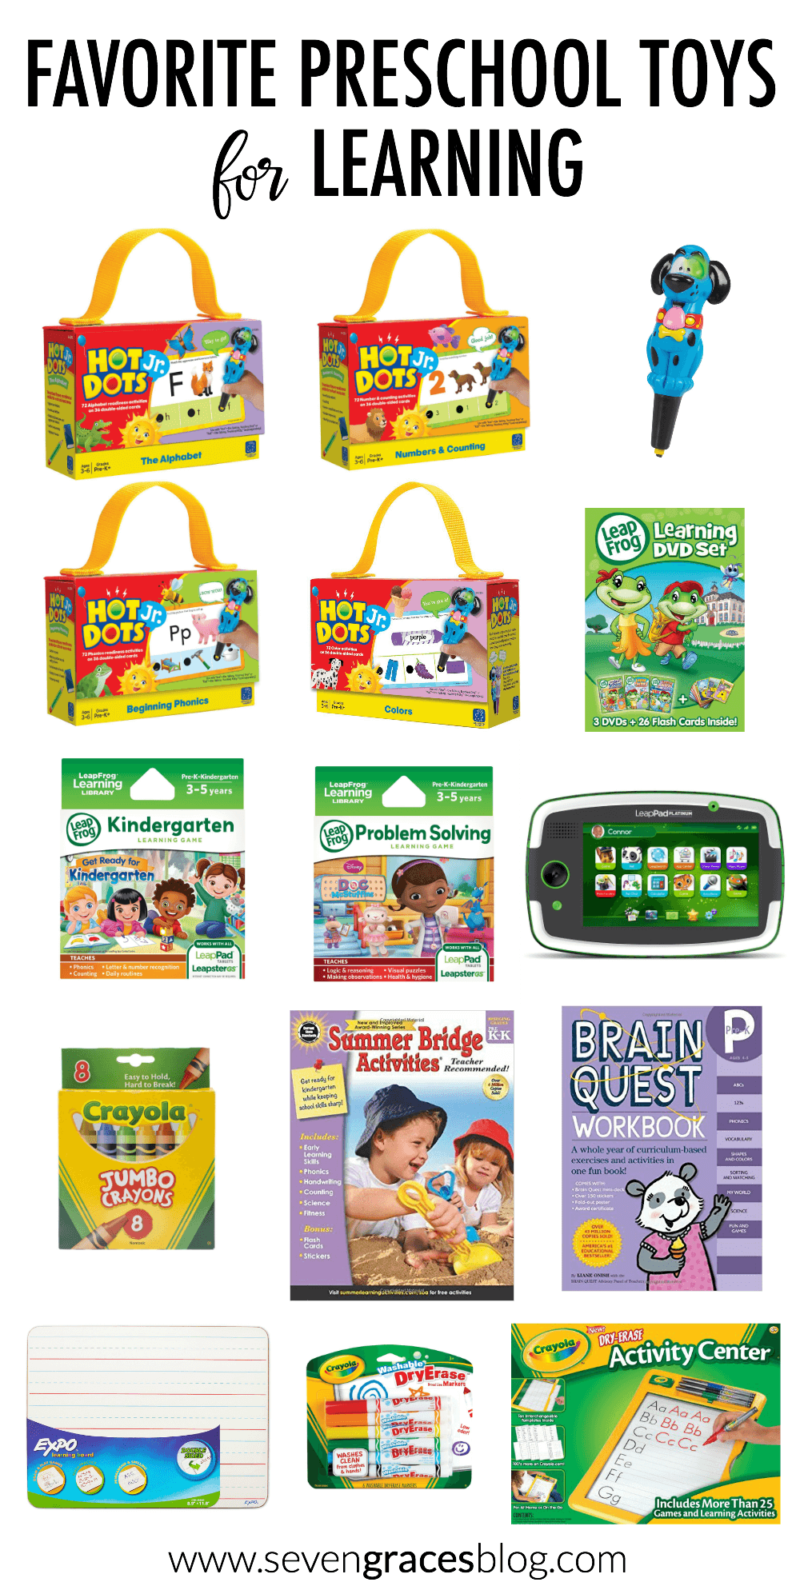 Preschool Learning Toys : Best preschool toys for learning seven graces